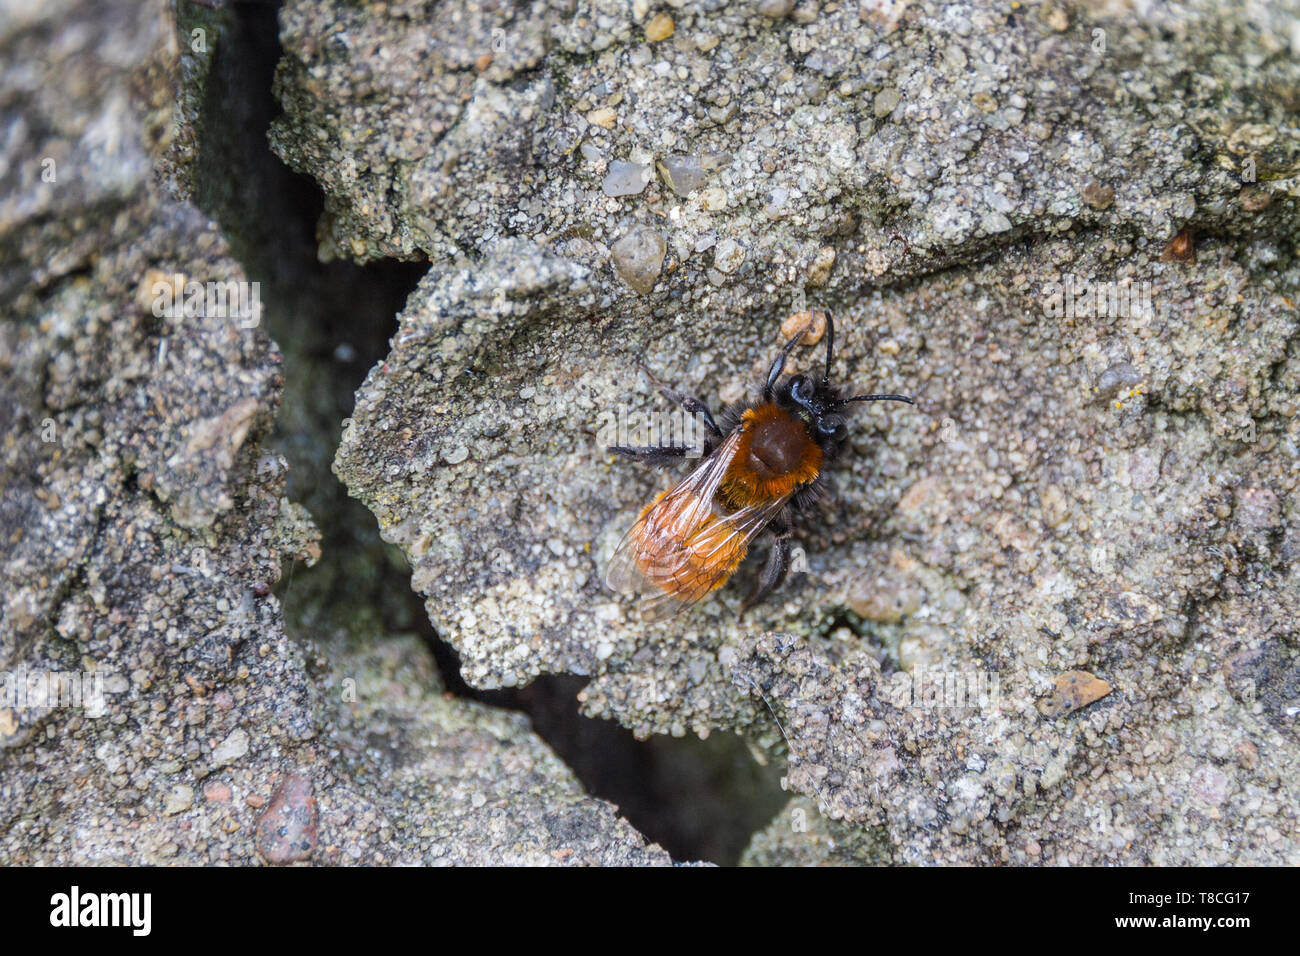 A close up detailed image of a tawny miner bee resting on a rock with the bee in sharp focus and the surrounding in defocus - Stock Image